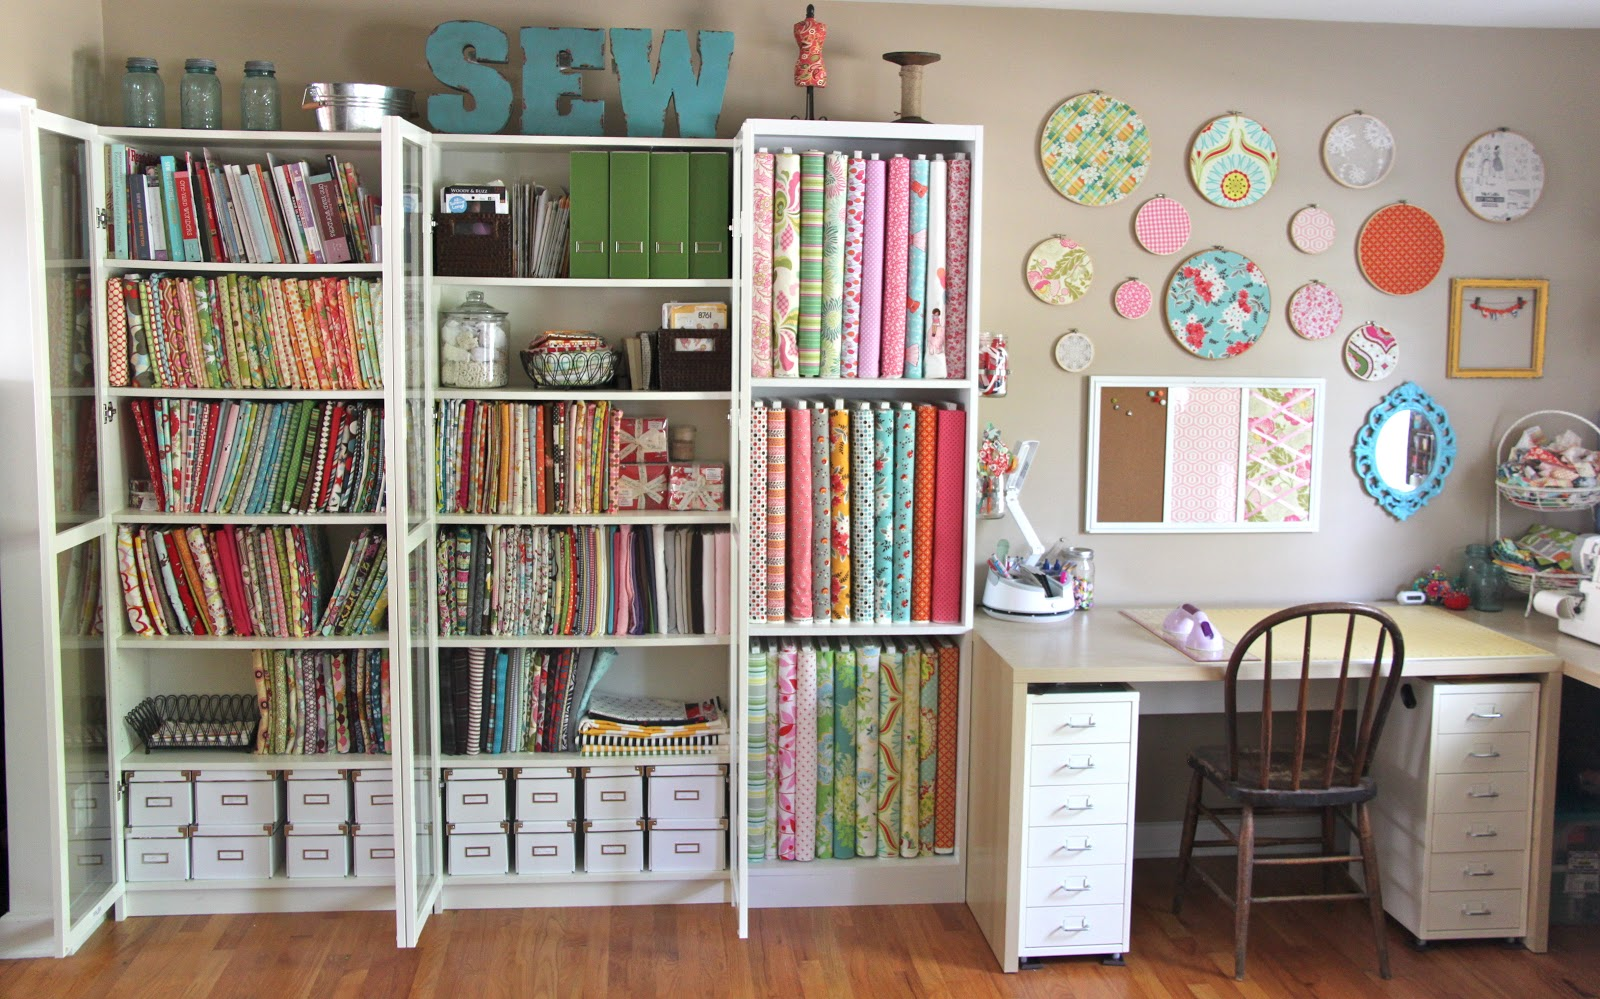 My Sewing Studio Tour The Reveal!